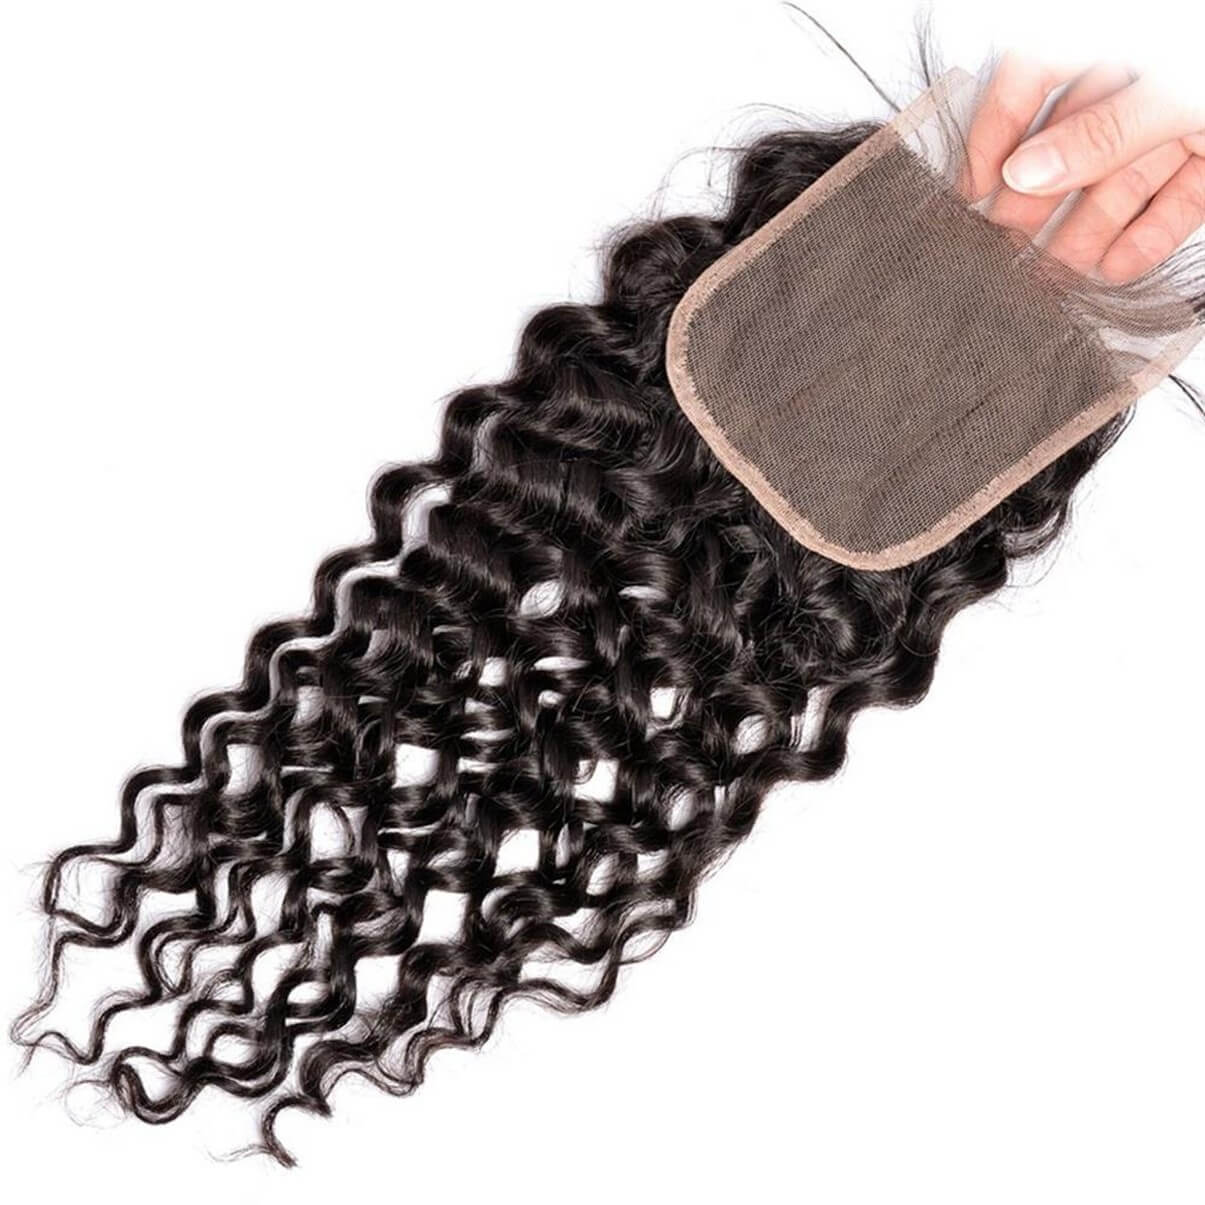 Lakihair 8A Lace Closure 4x4 Brazilian Unprocessed Virgin Human Hair Water Wave Closure